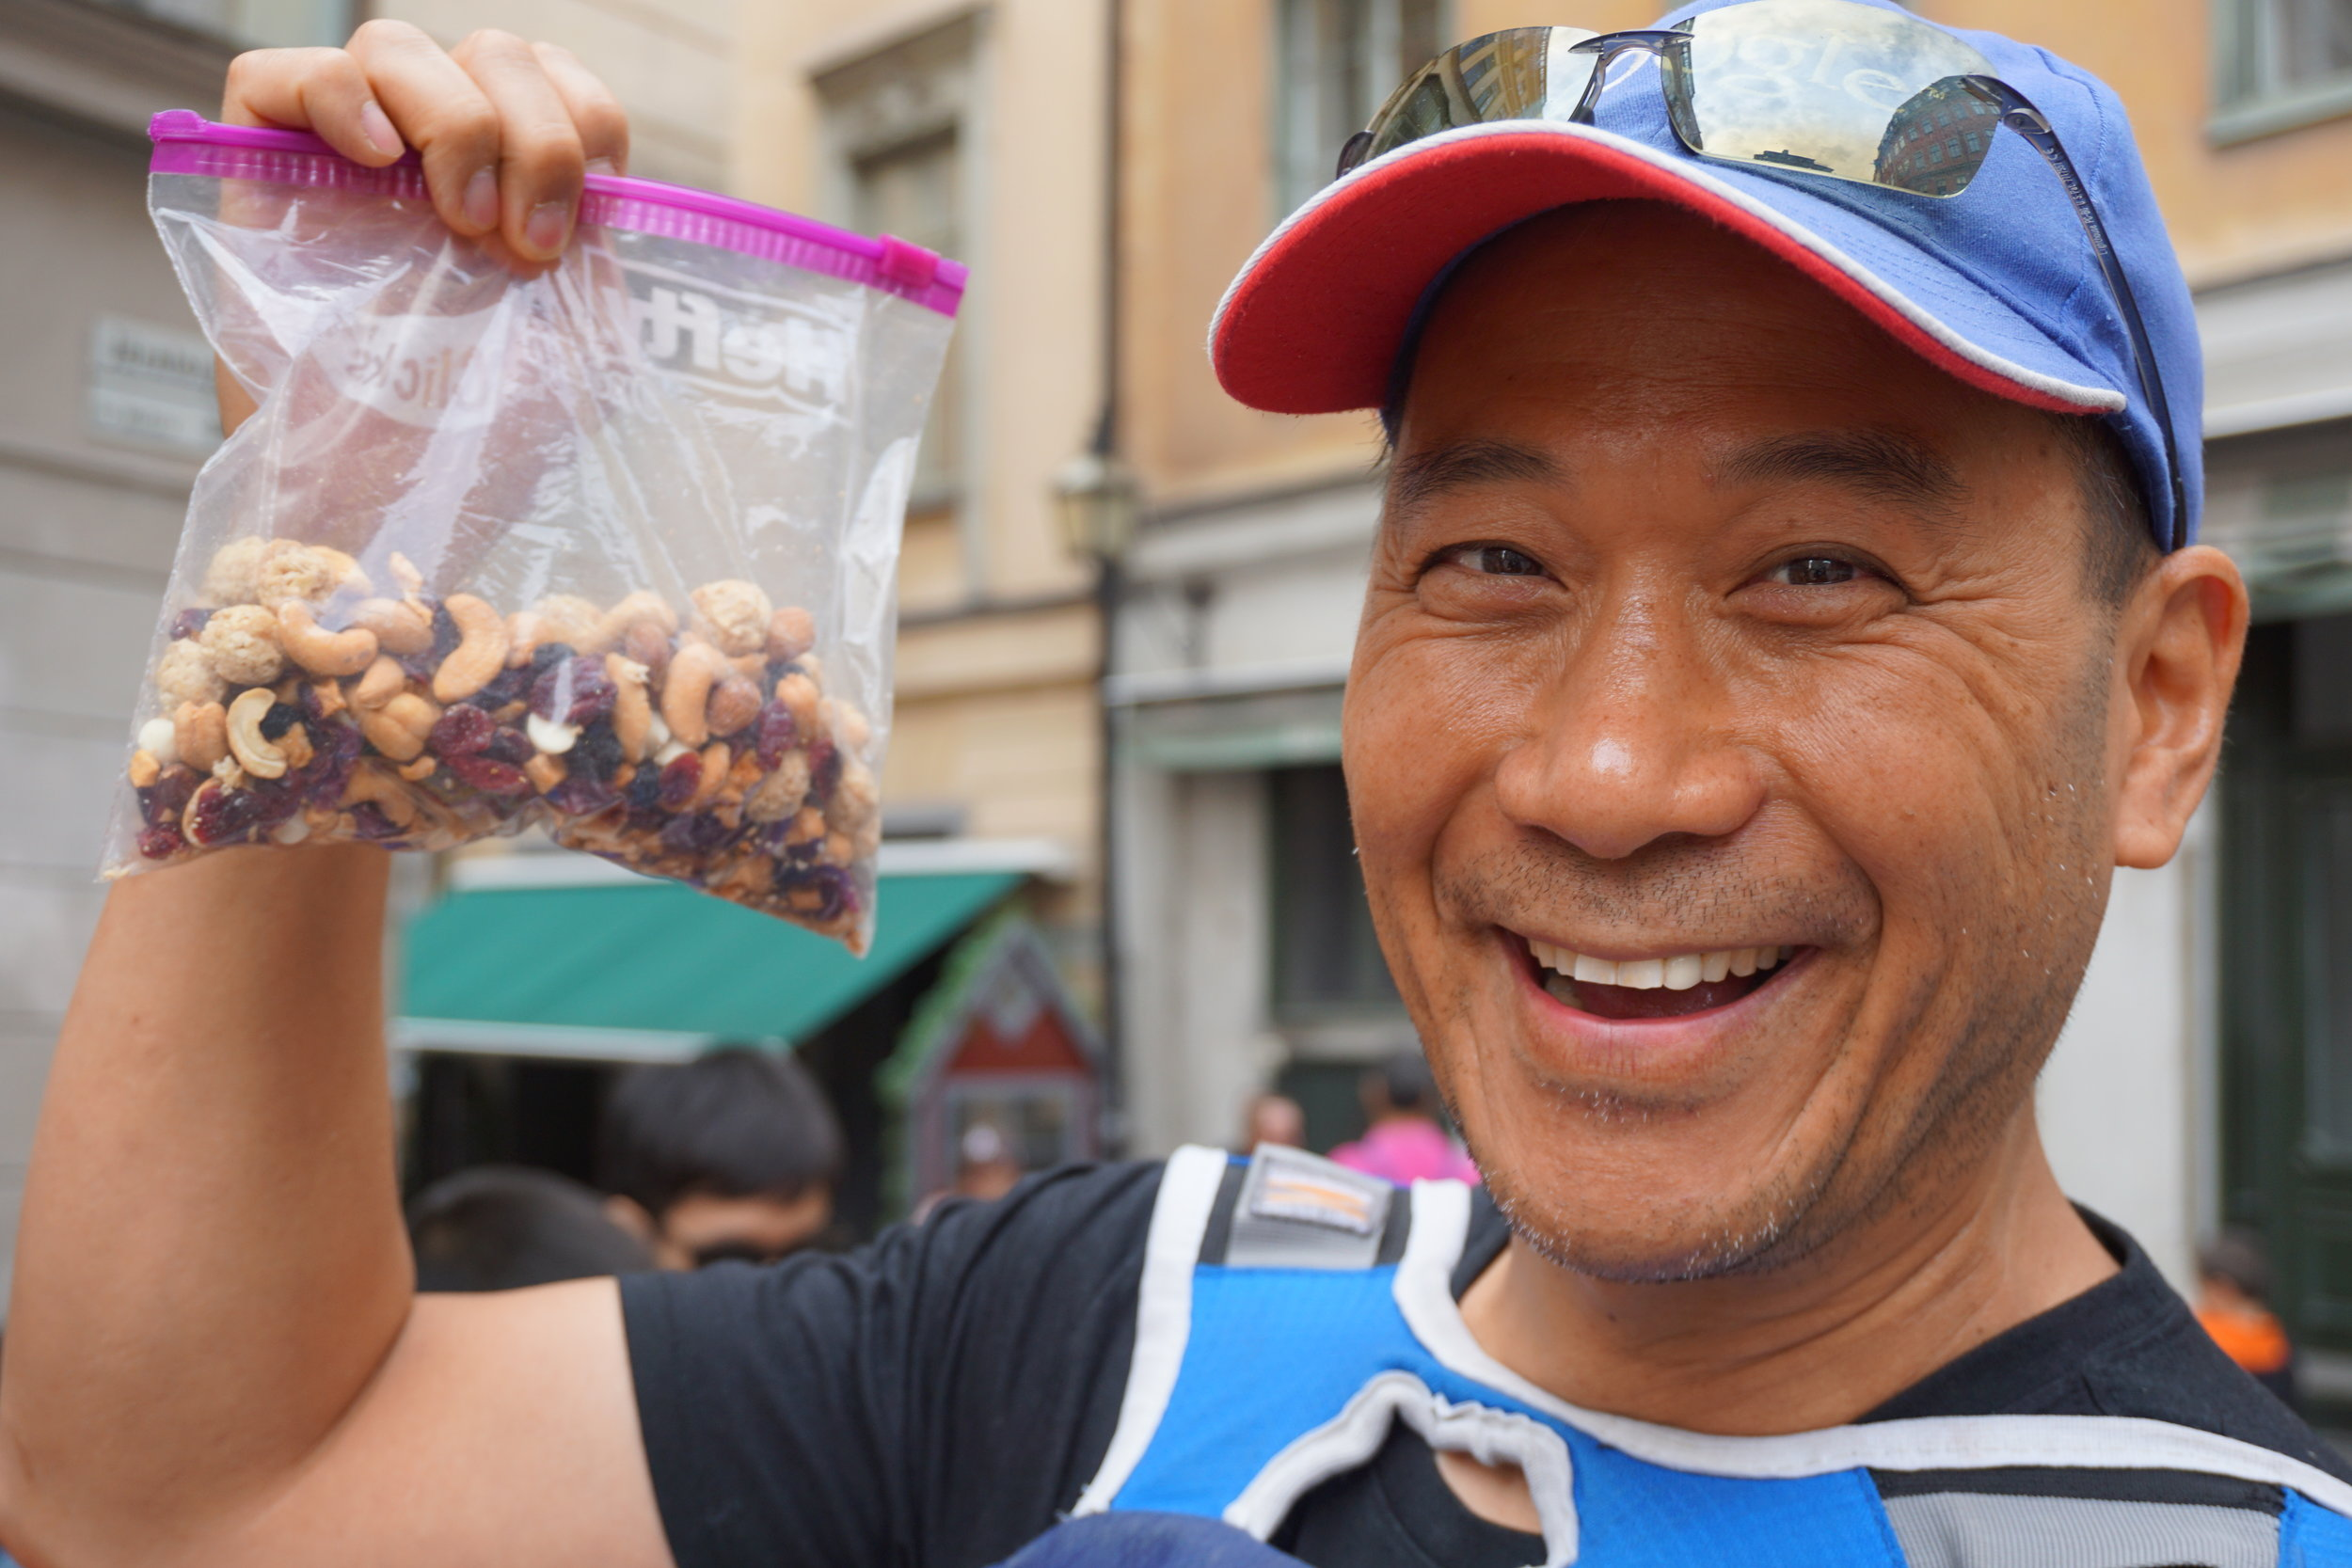 Uncle Dave was so proud of his homemade trail mix.